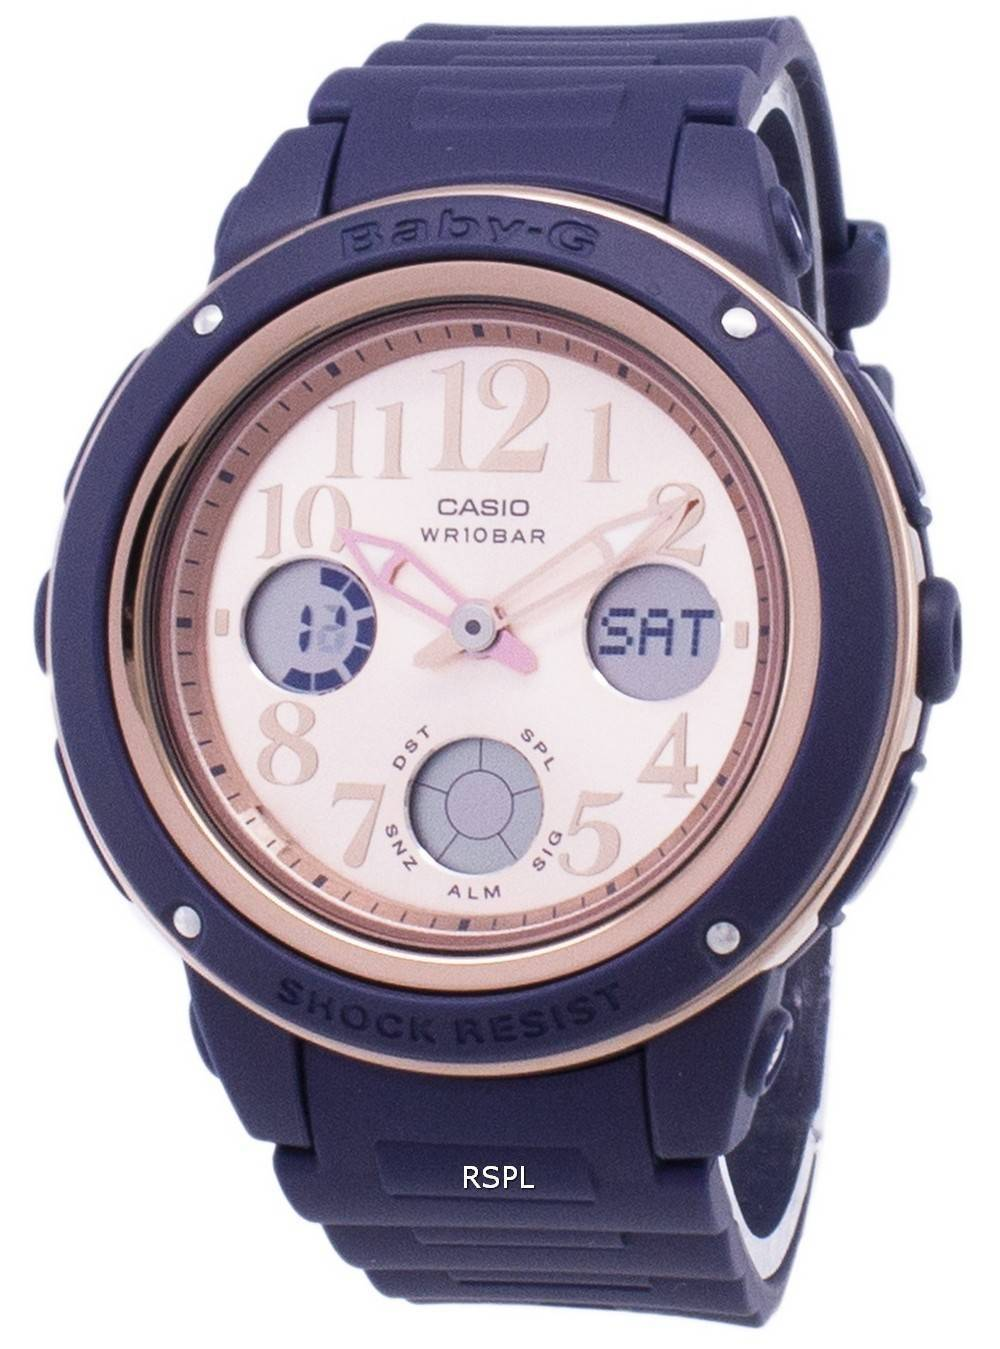 6062e015336 Casio Baby-G BGA-150PG-2B1 Illumination Analog Digital Women s Watch ...